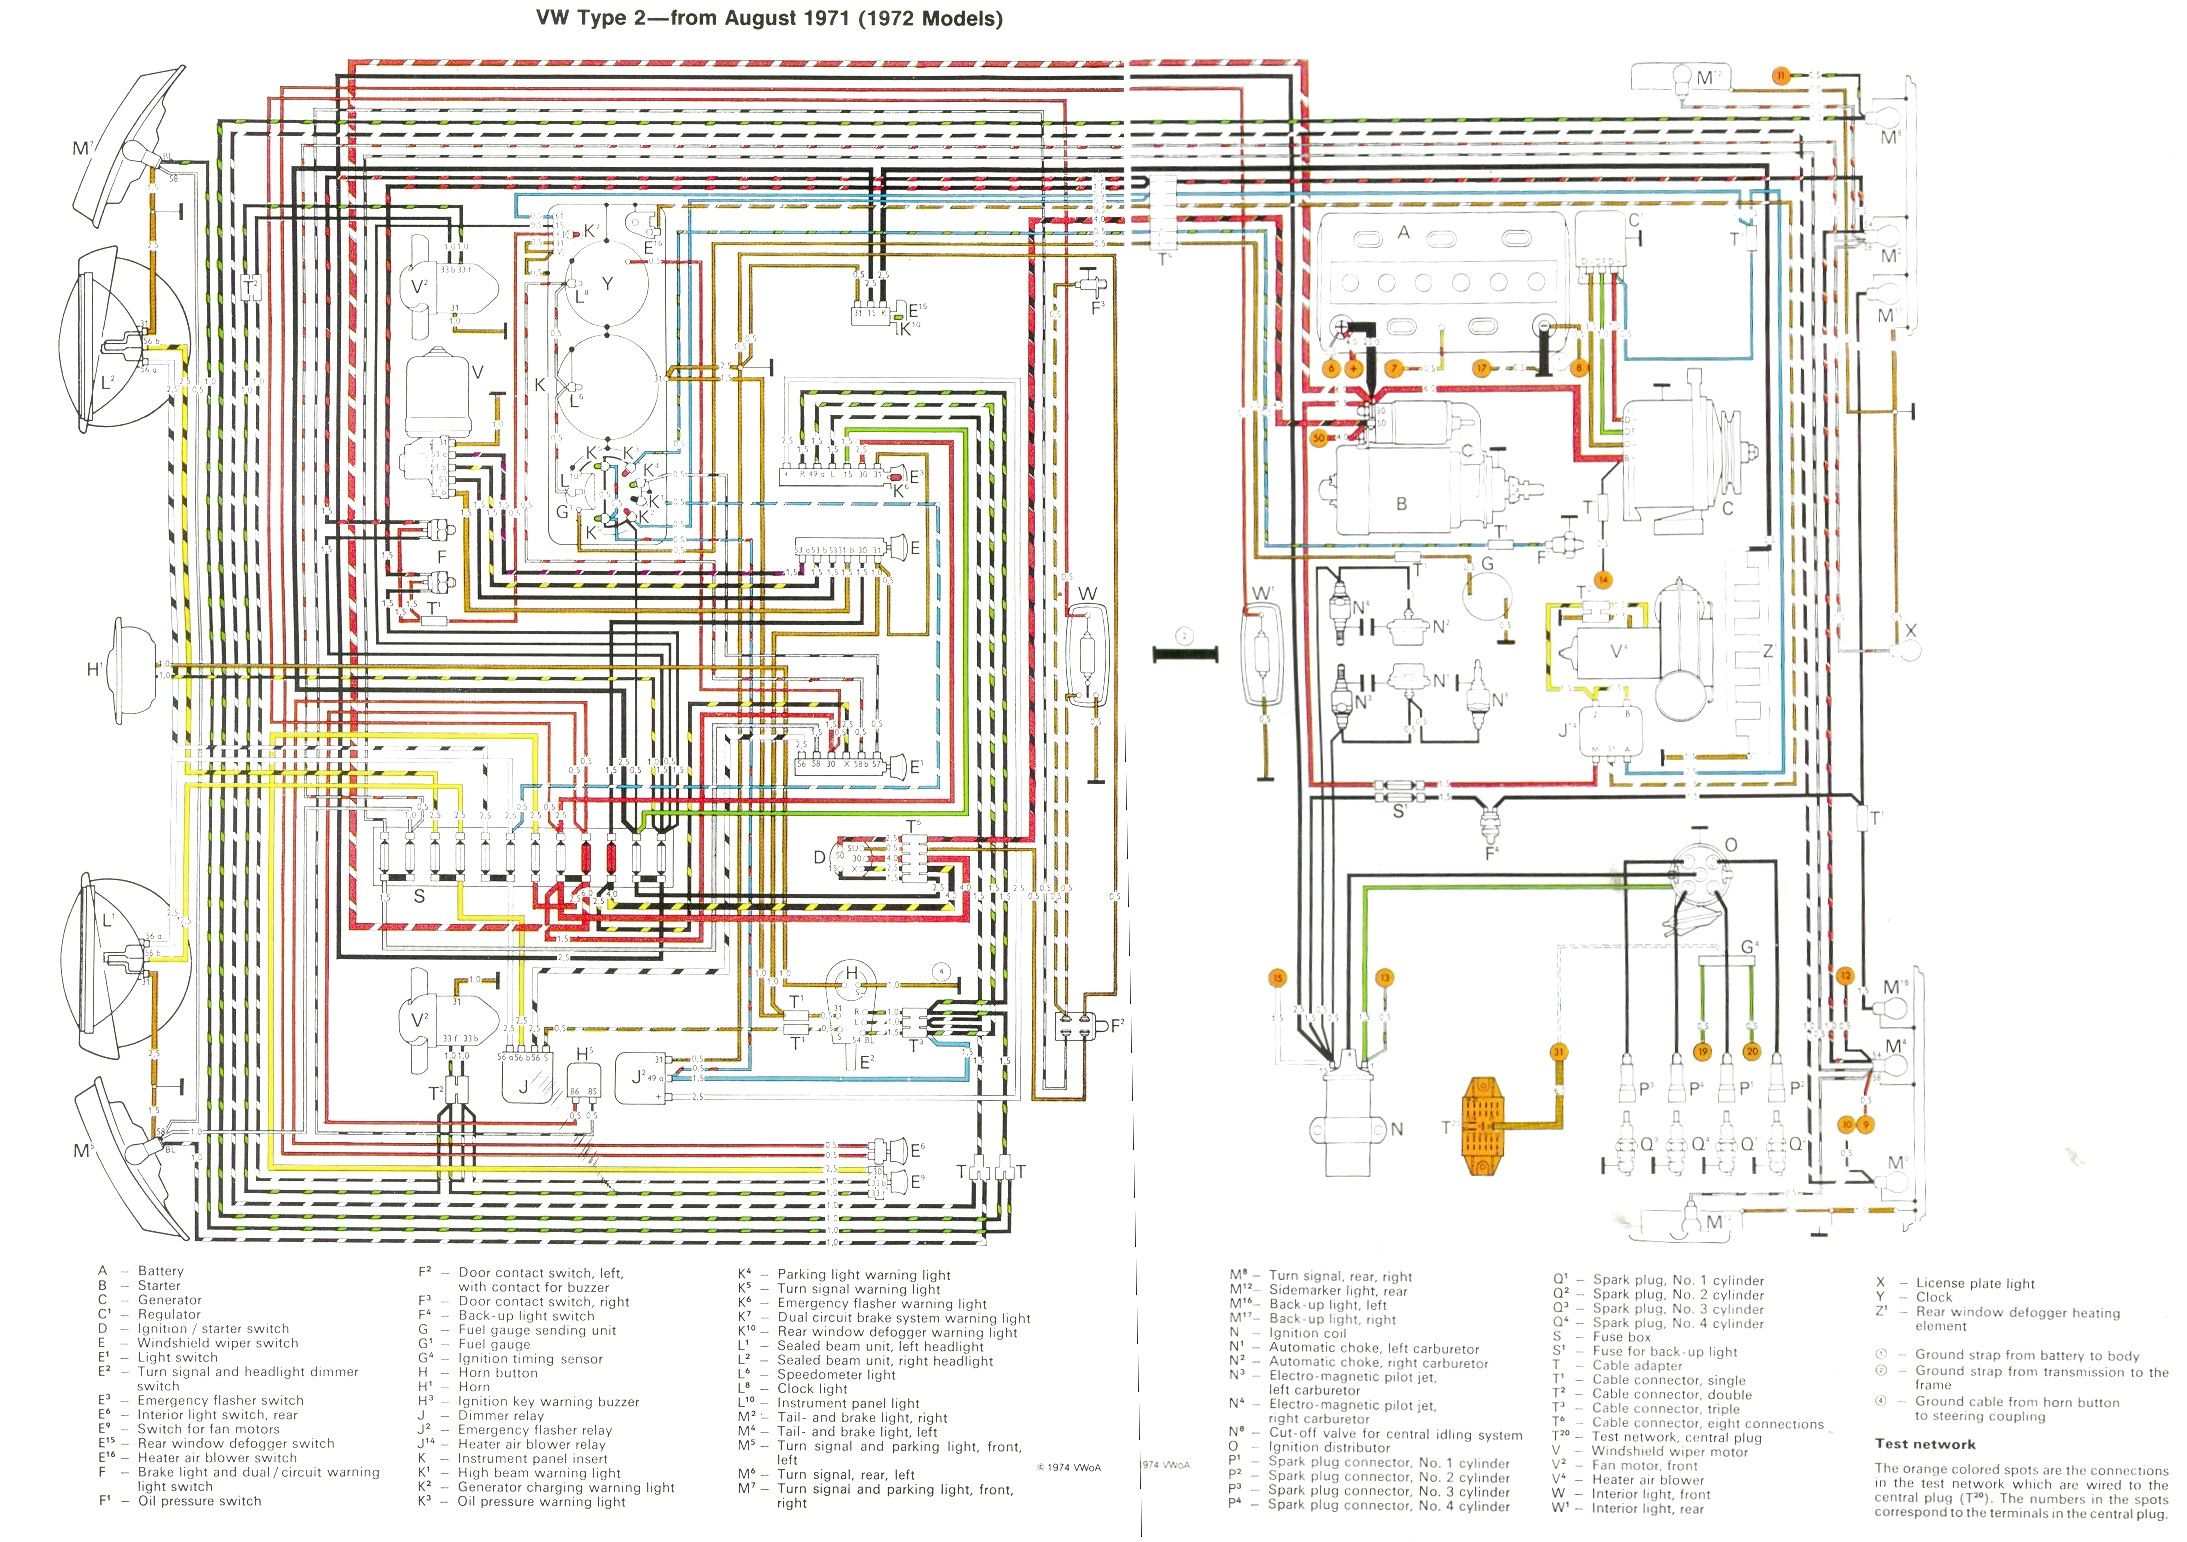 bus 71 72 vw bus wiring diagram 1965 vw bus wiring diagram \u2022 wiring diagrams vw t5 wiring diagram at crackthecode.co